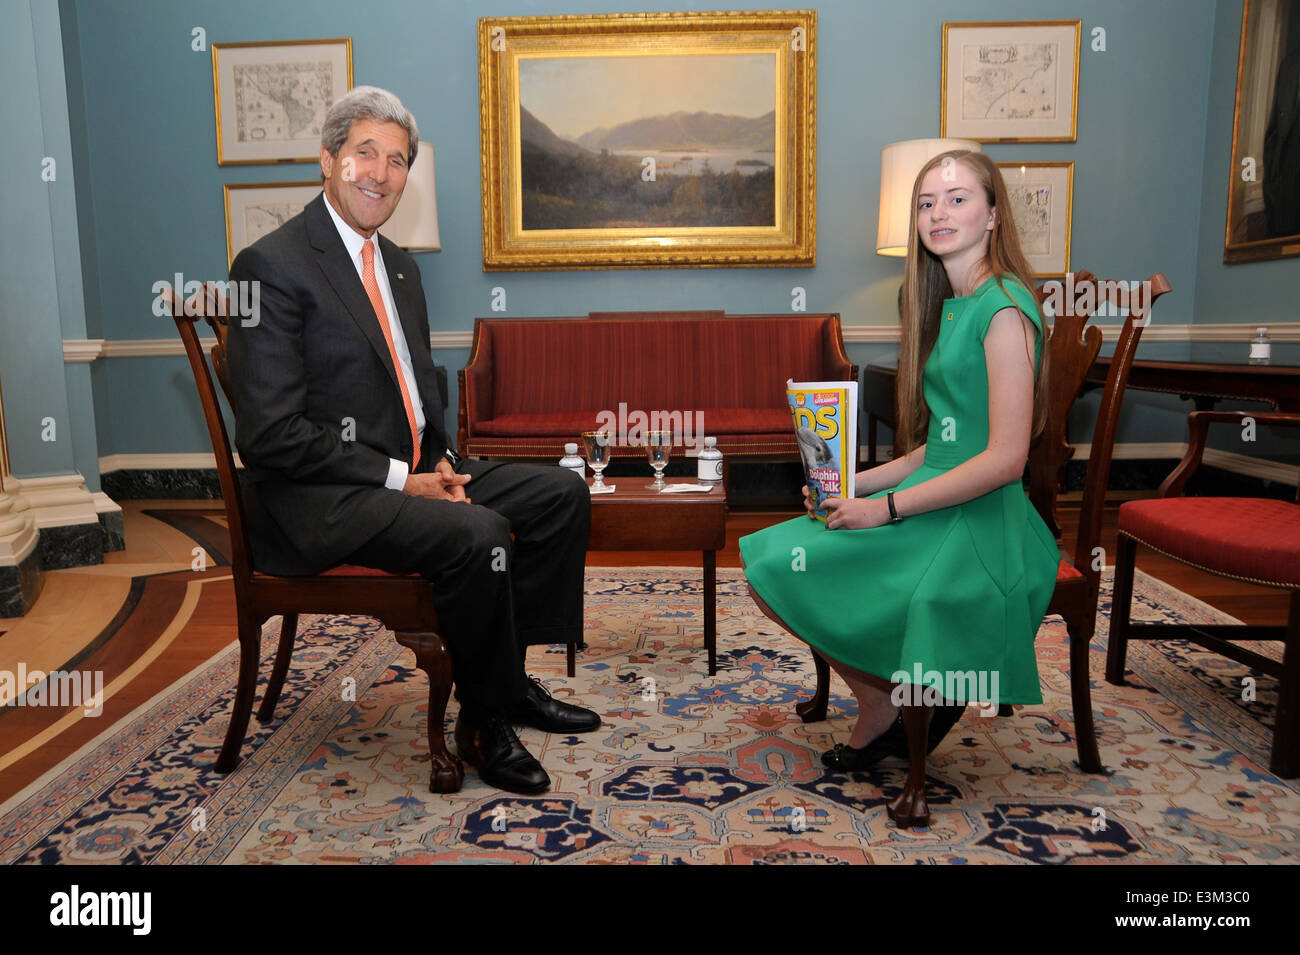 Secretary Kerry Poses With National Geographic Kids Reporter Moore - Stock Image